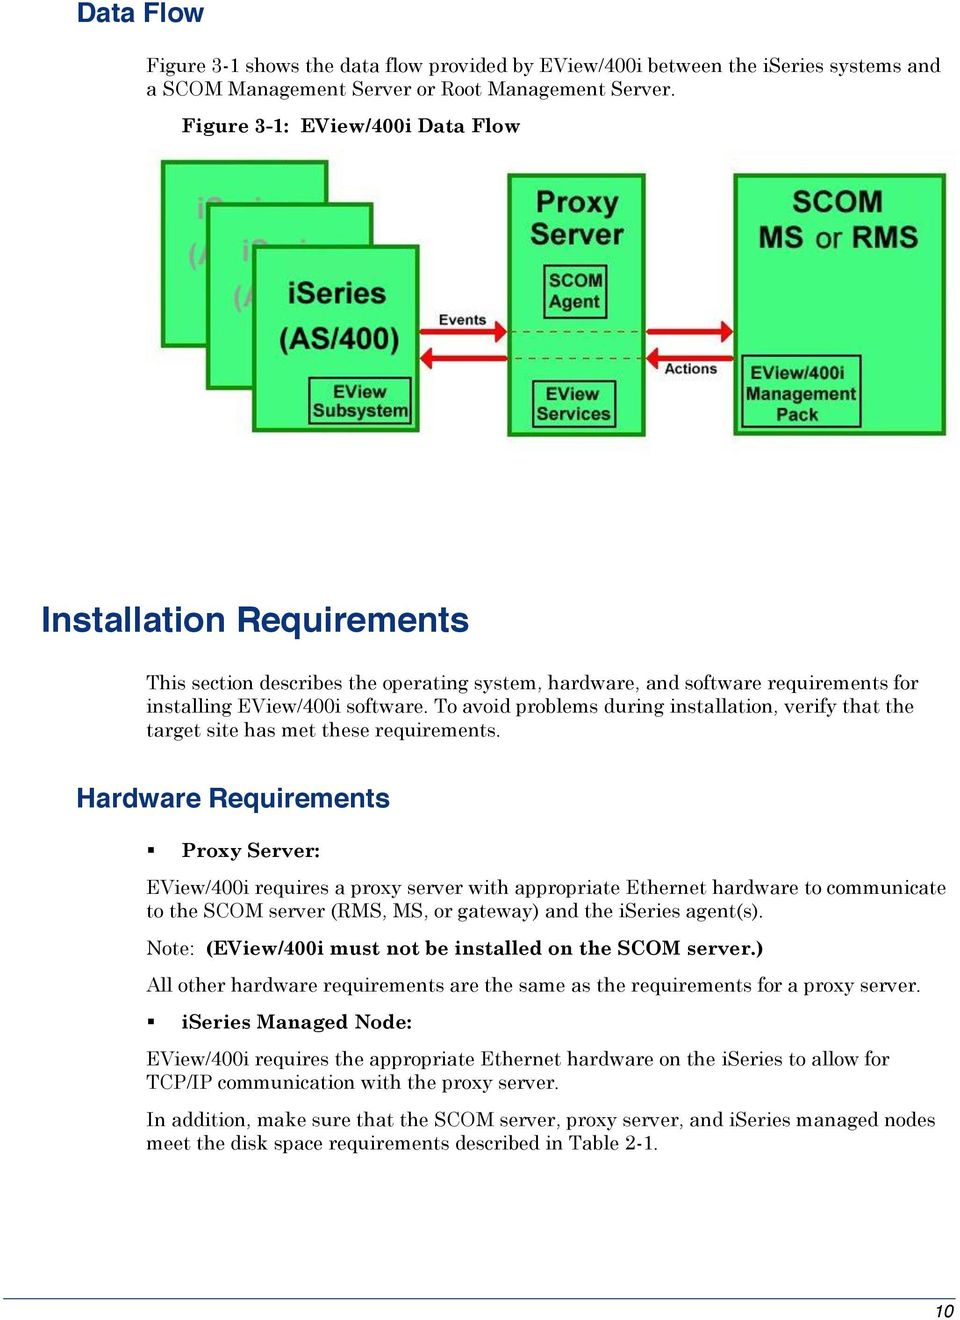 To avoid problems during installation, verify that the target site has met these requirements.